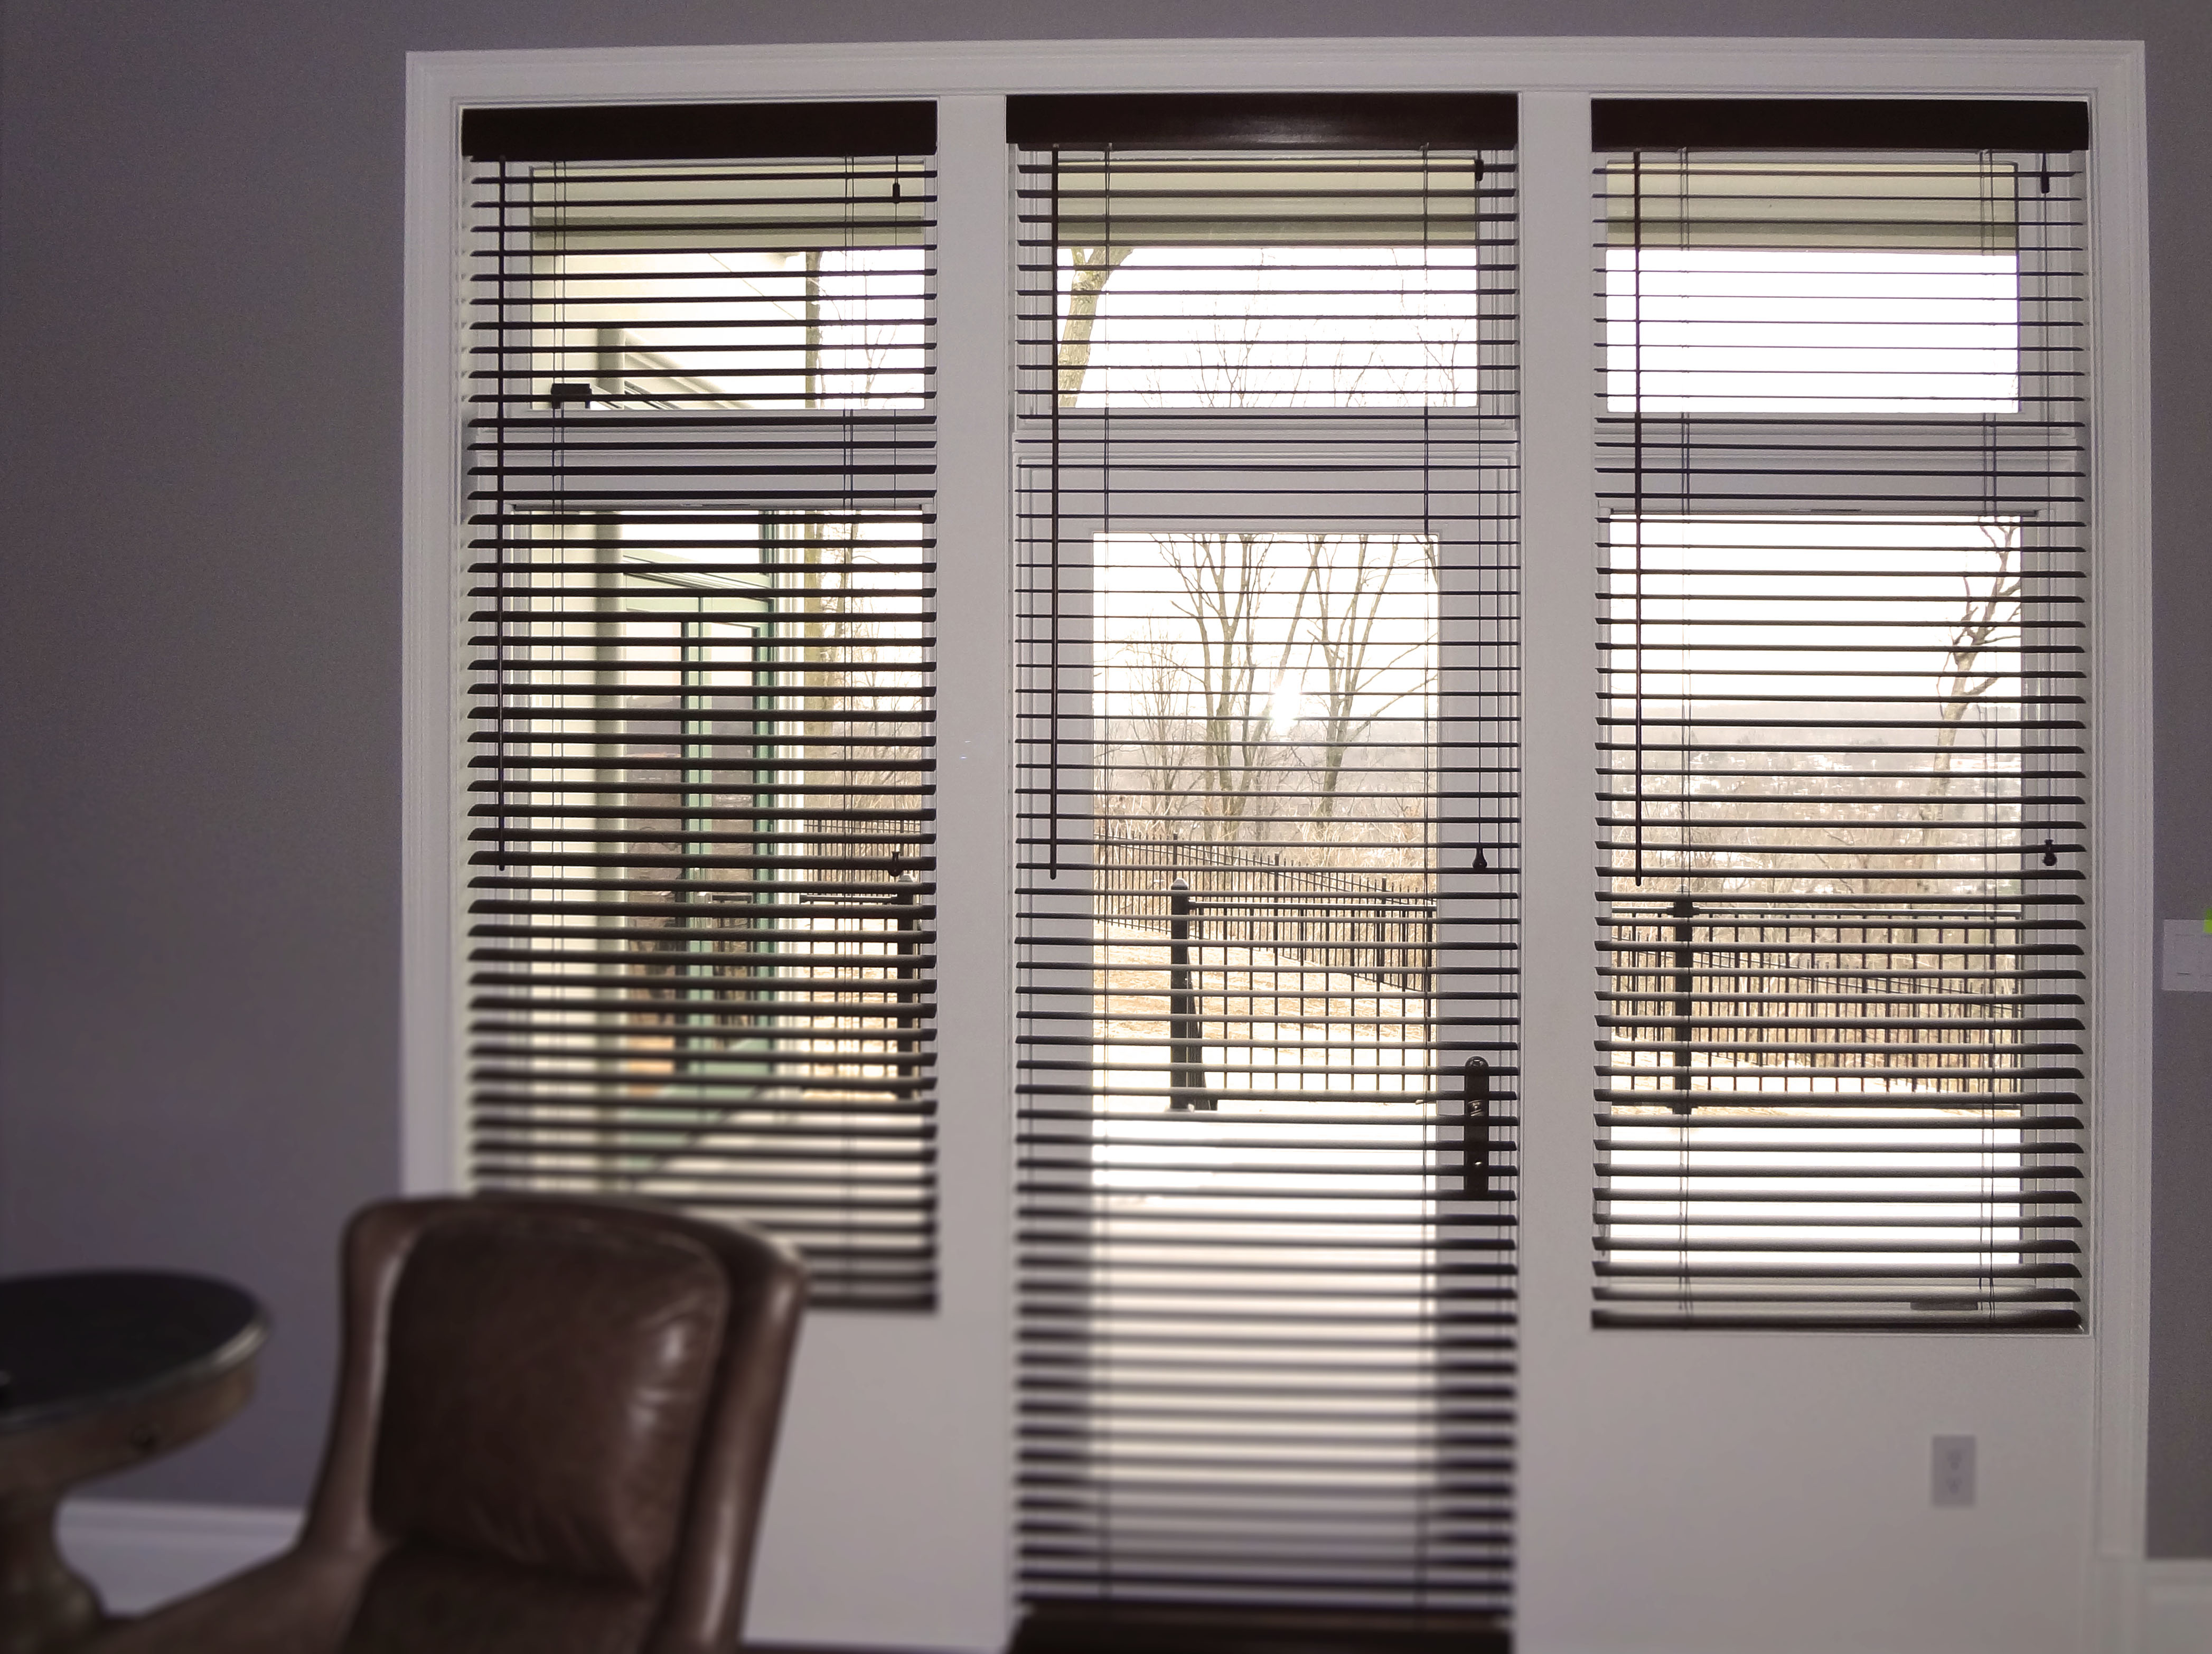 outlet faux ontario wood blinds toronto window aluminum s shutters shutter in coverings gray leading